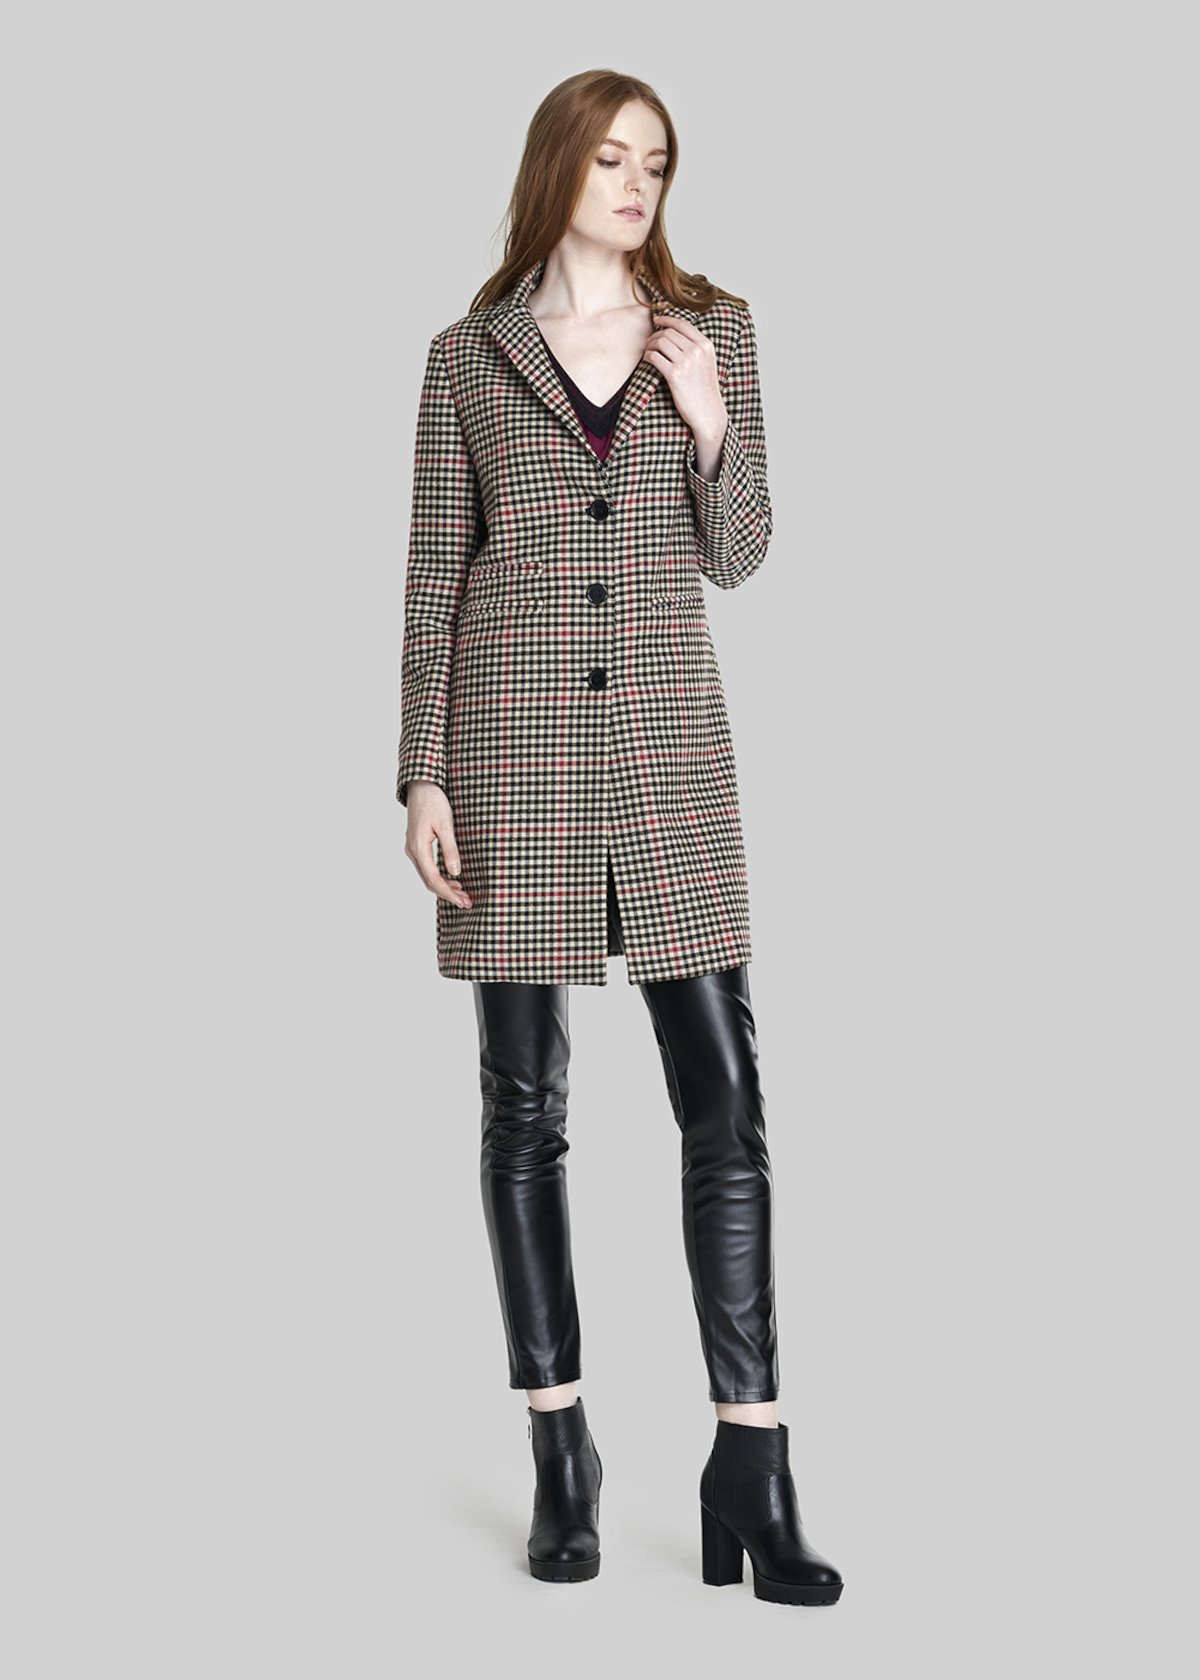 Claudius check coat with buttons. - Black / Beige Fantasia - Woman - Category image